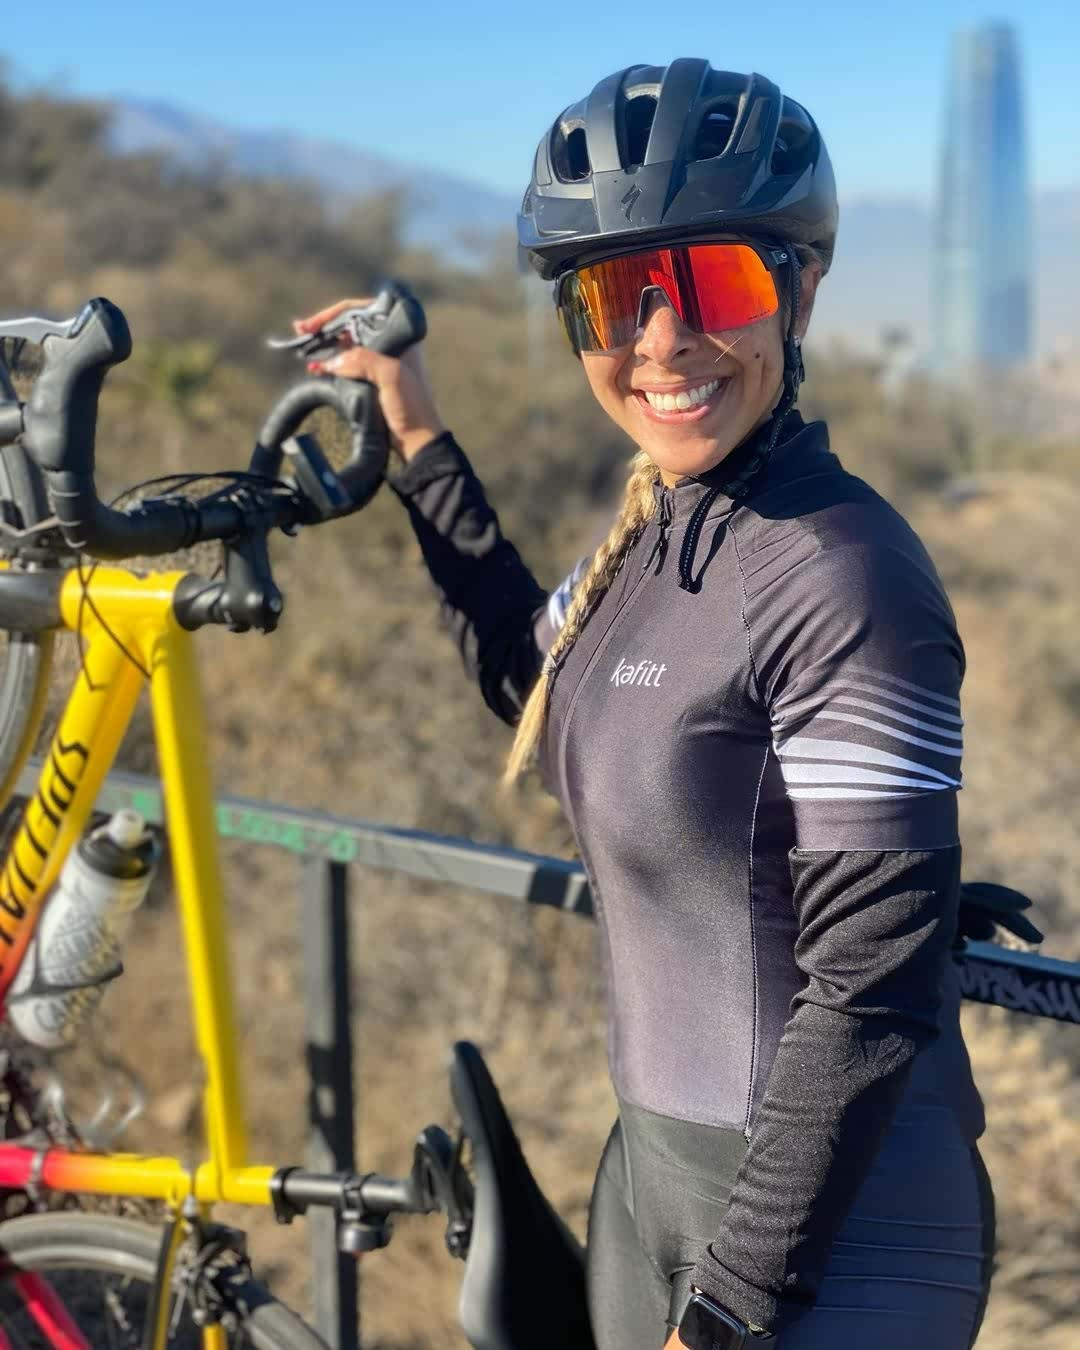 Biking girls How to Get the Perfect Style for Your Exercise Regime